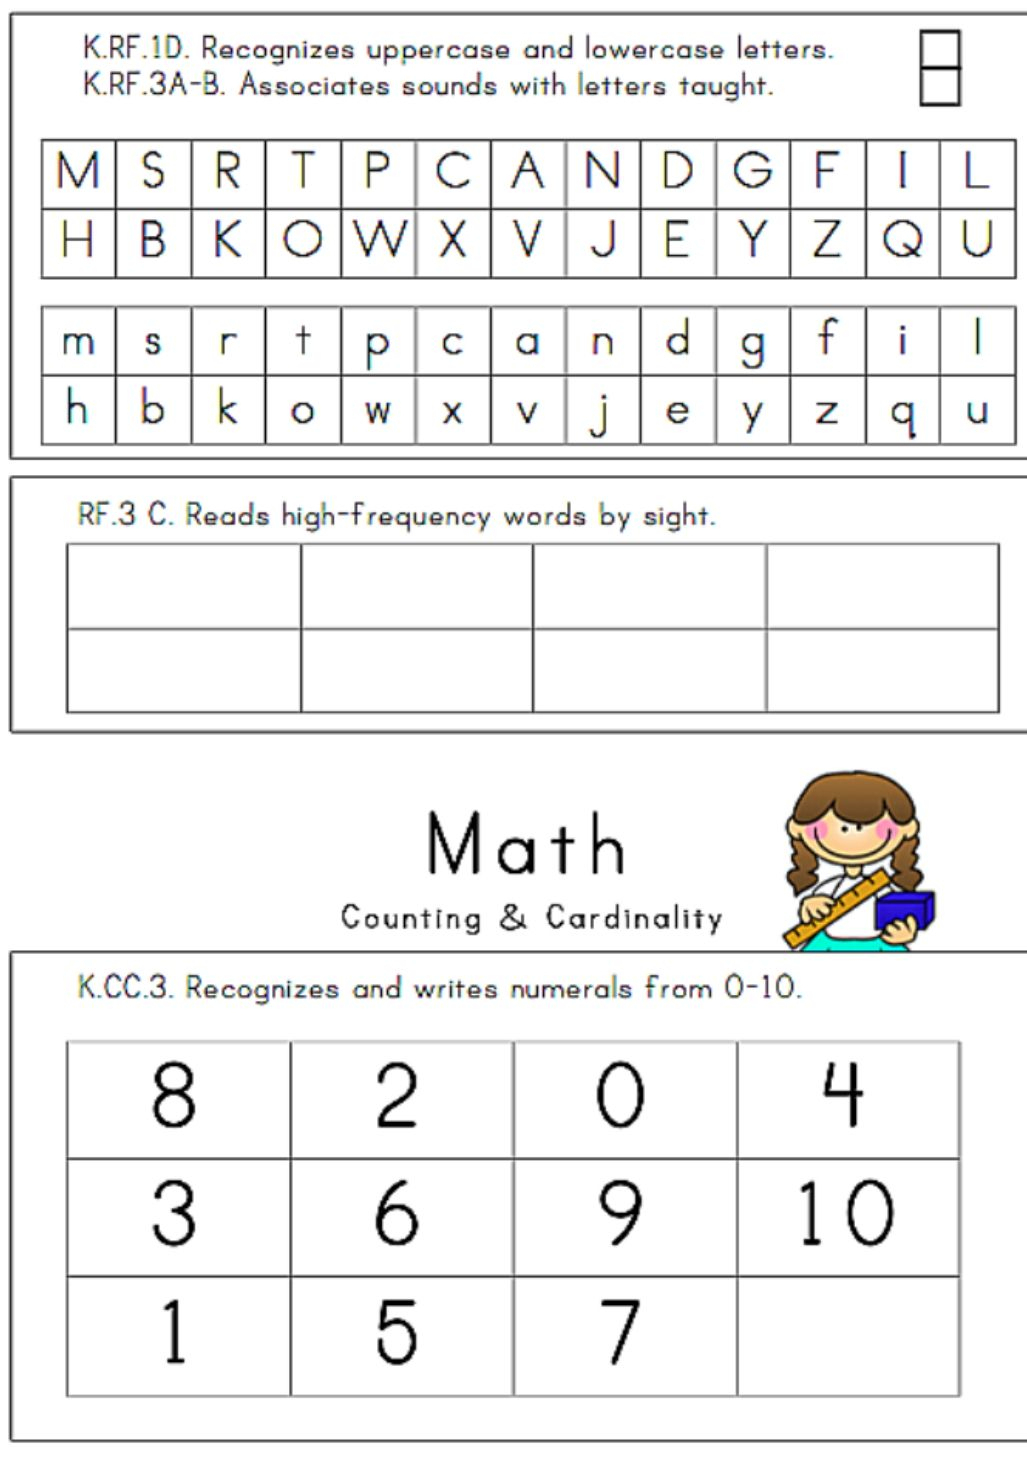 24 Page, Illustrated Kindergarten Assessment | Assessments - Free Printable Informal Math Assessments